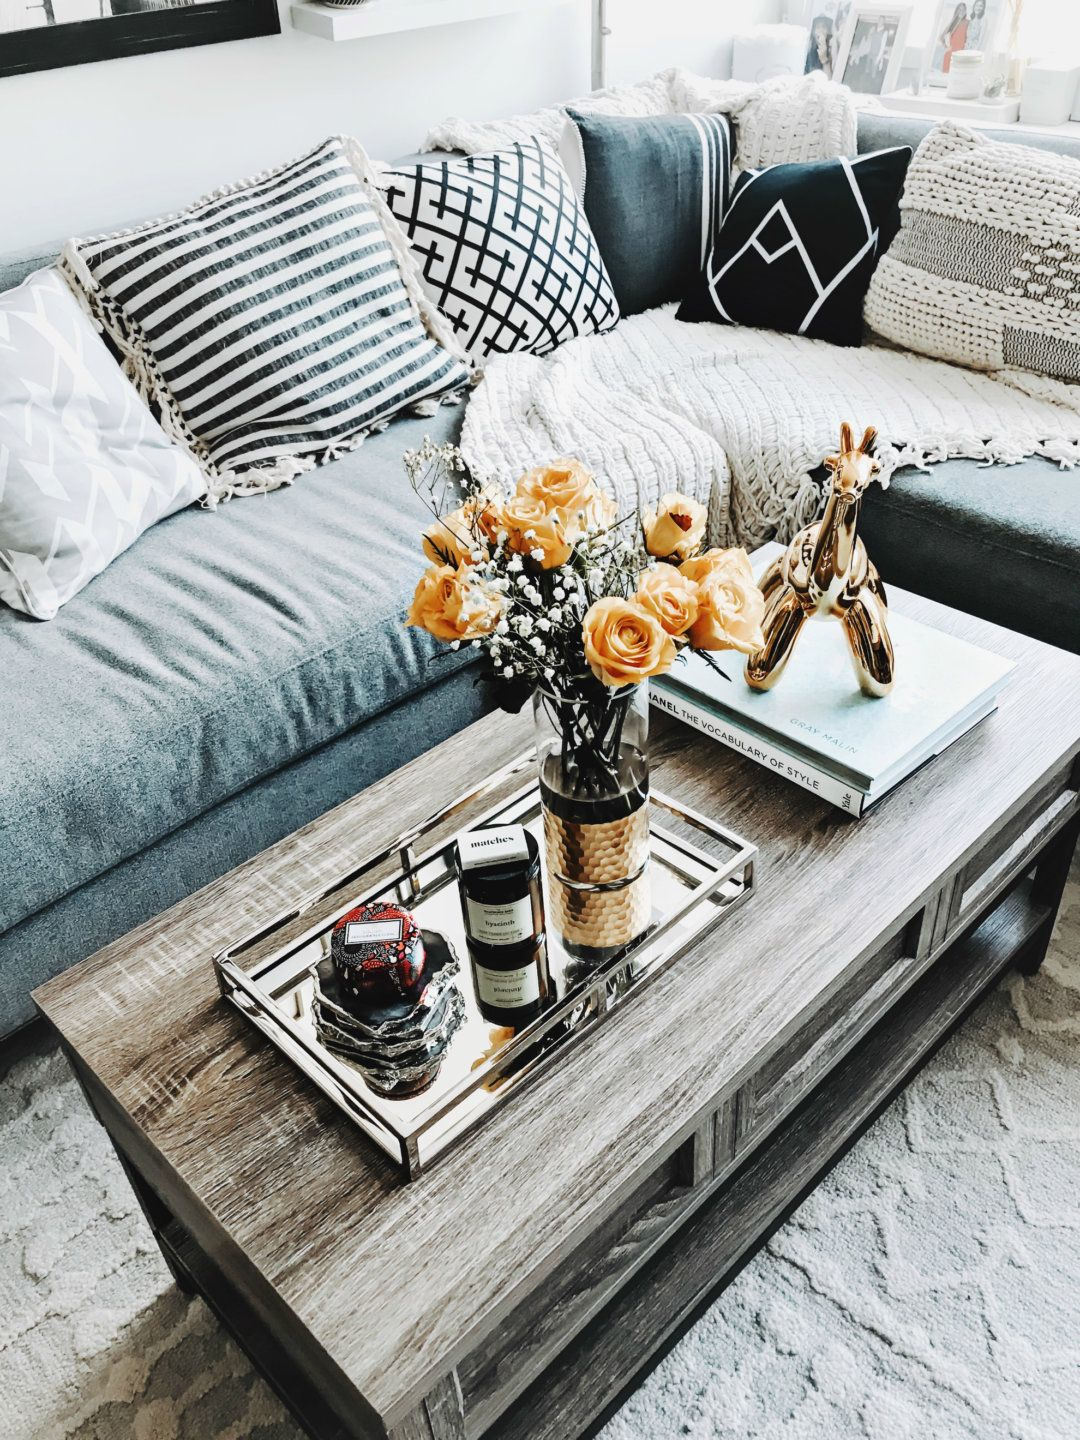 6 Steps To Creating An Instagram Worthy Coffee Table Display To Be Bright Coffee Table Display Coffee Table Table Display [ 1440 x 1080 Pixel ]